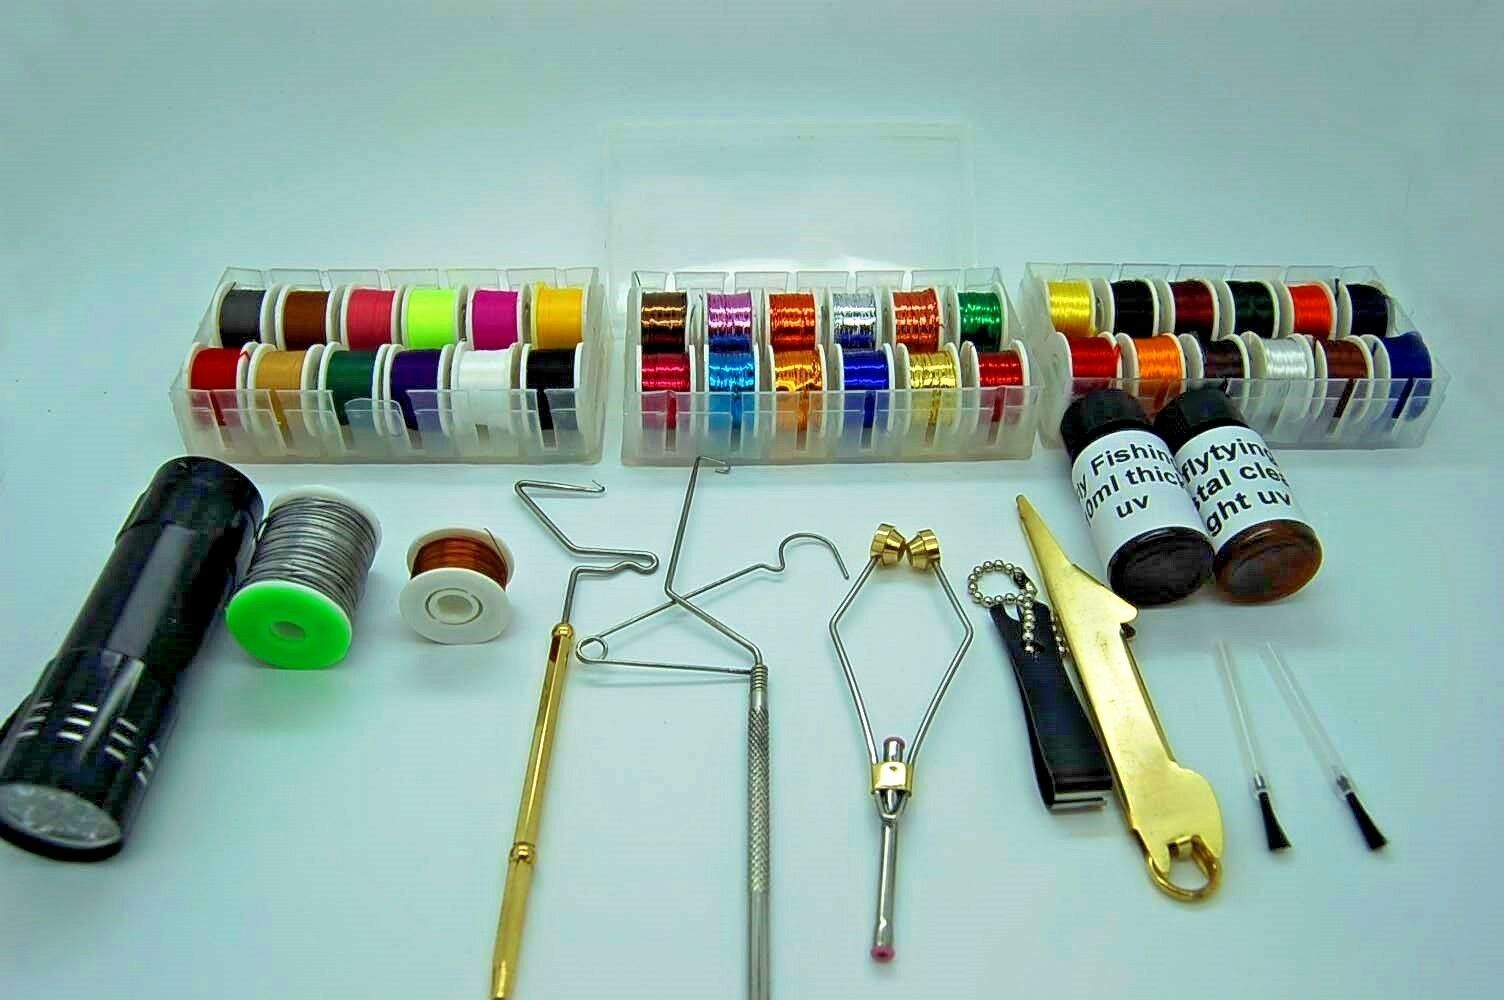 Fly Fly Fly Tying Tool & Material Kit, Floss, Tinsel, Thread, Glue, Whip Finisher, Wire a51620